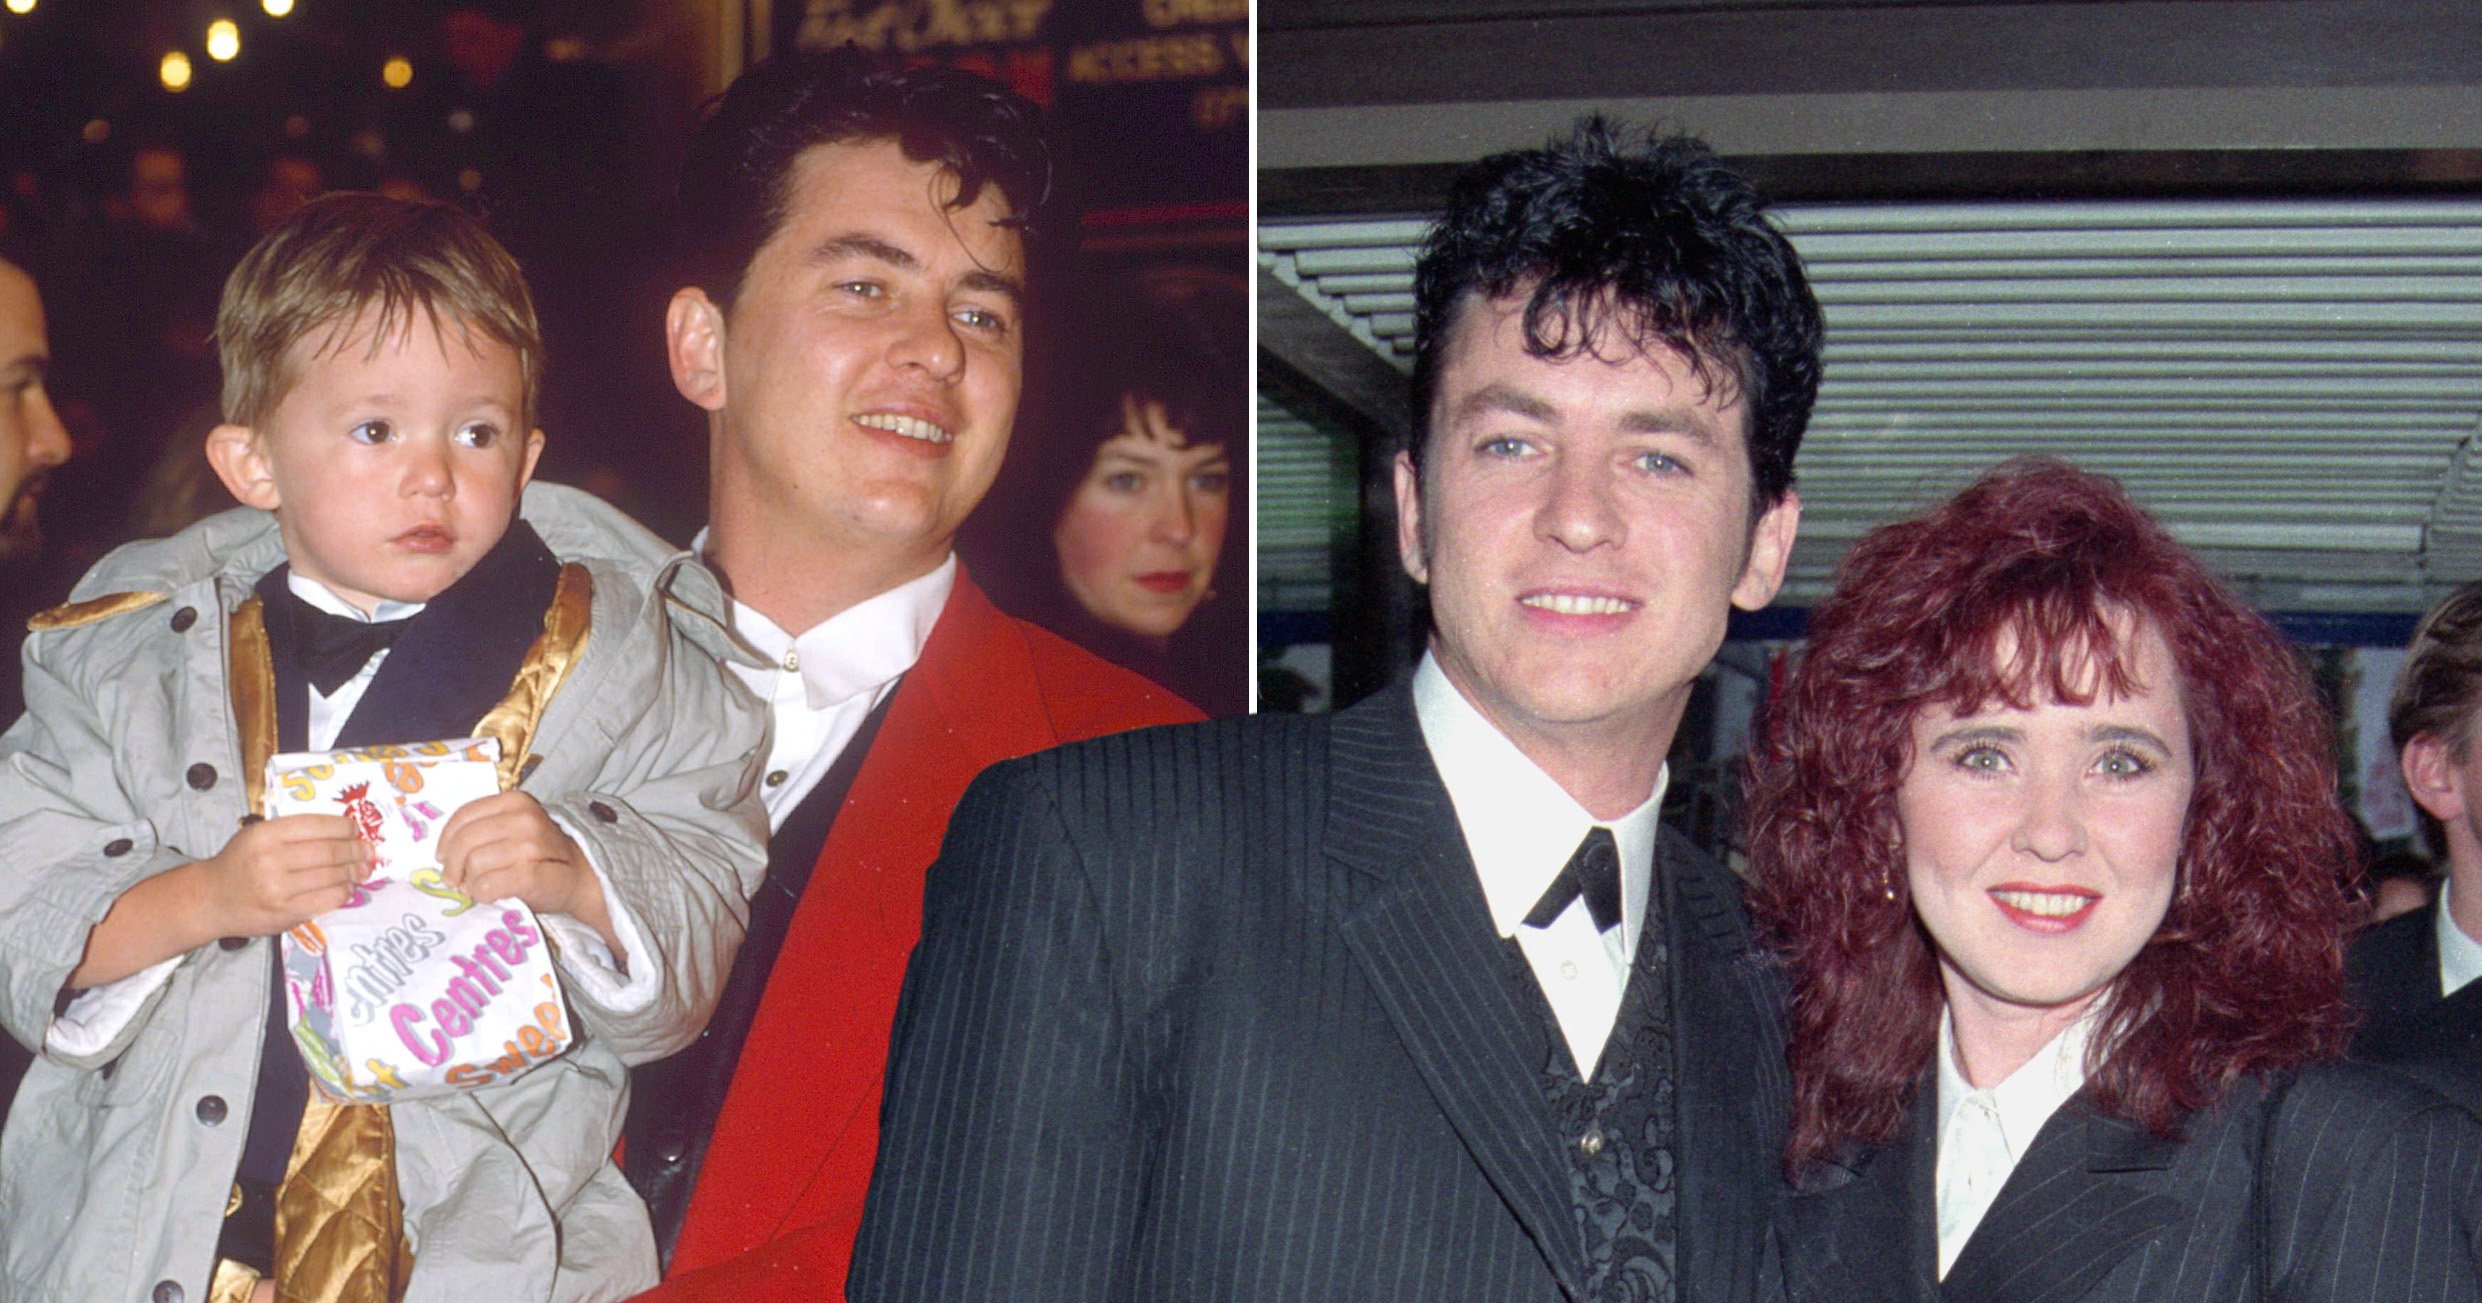 Coleen Nolan says ex Shane Richie used to get neighbours to change his sons' dirty nappies: 'He didn't do poo'